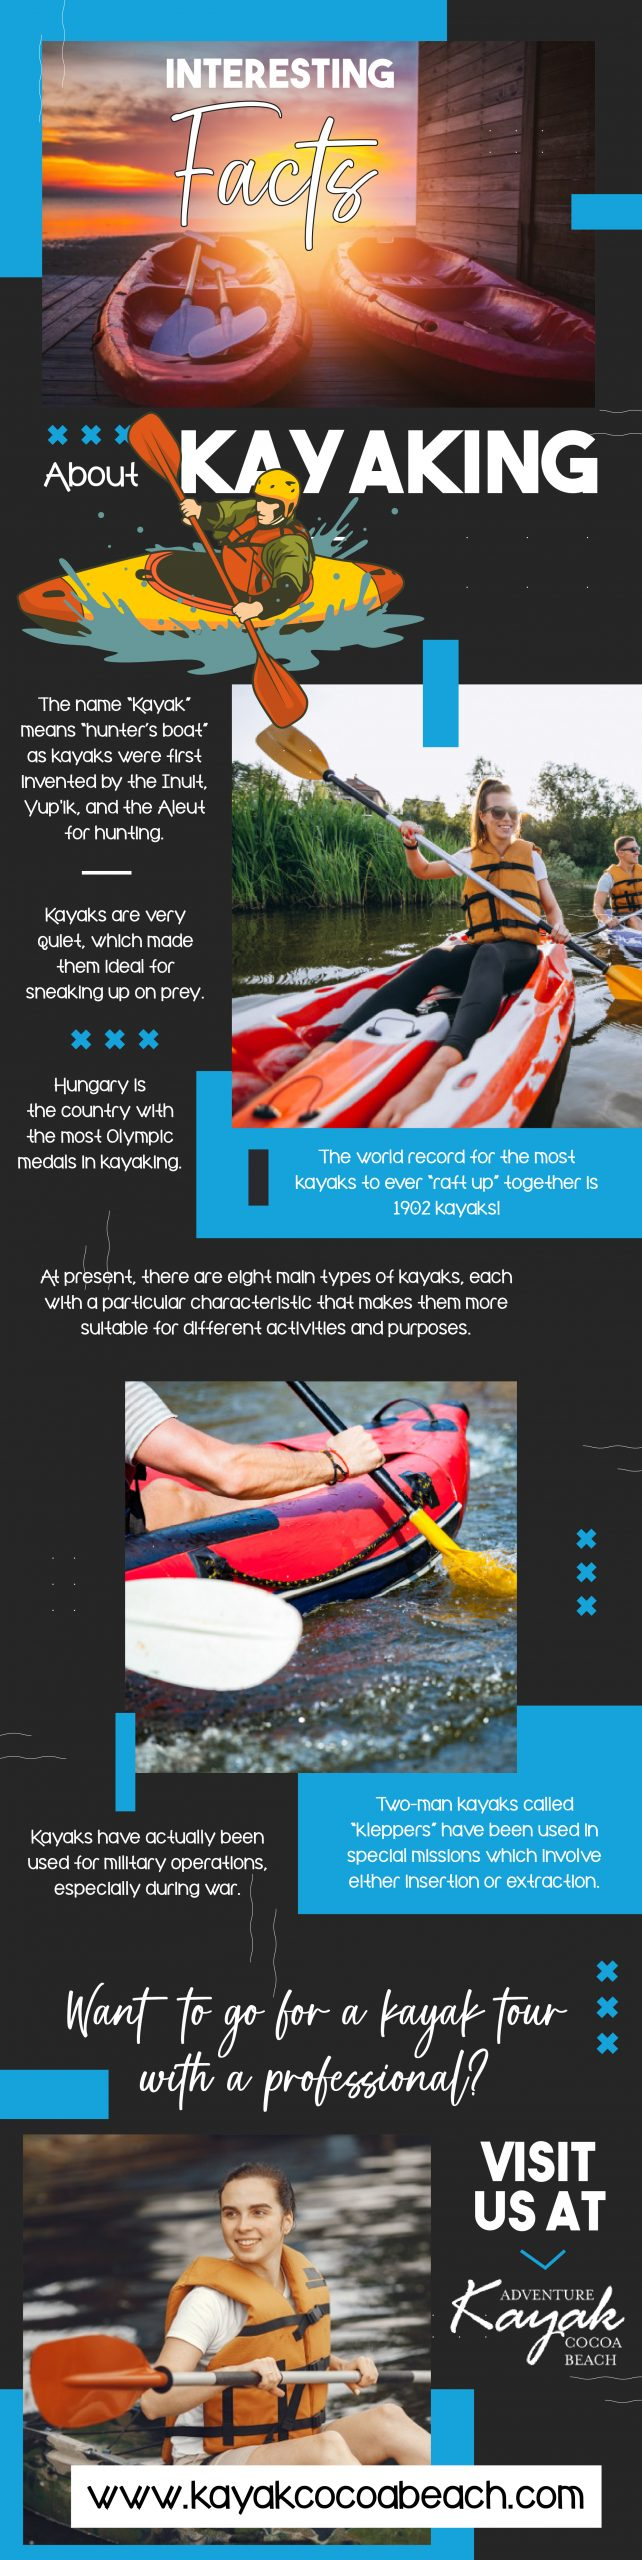 Manager Kayakcocoabeach01203483 1